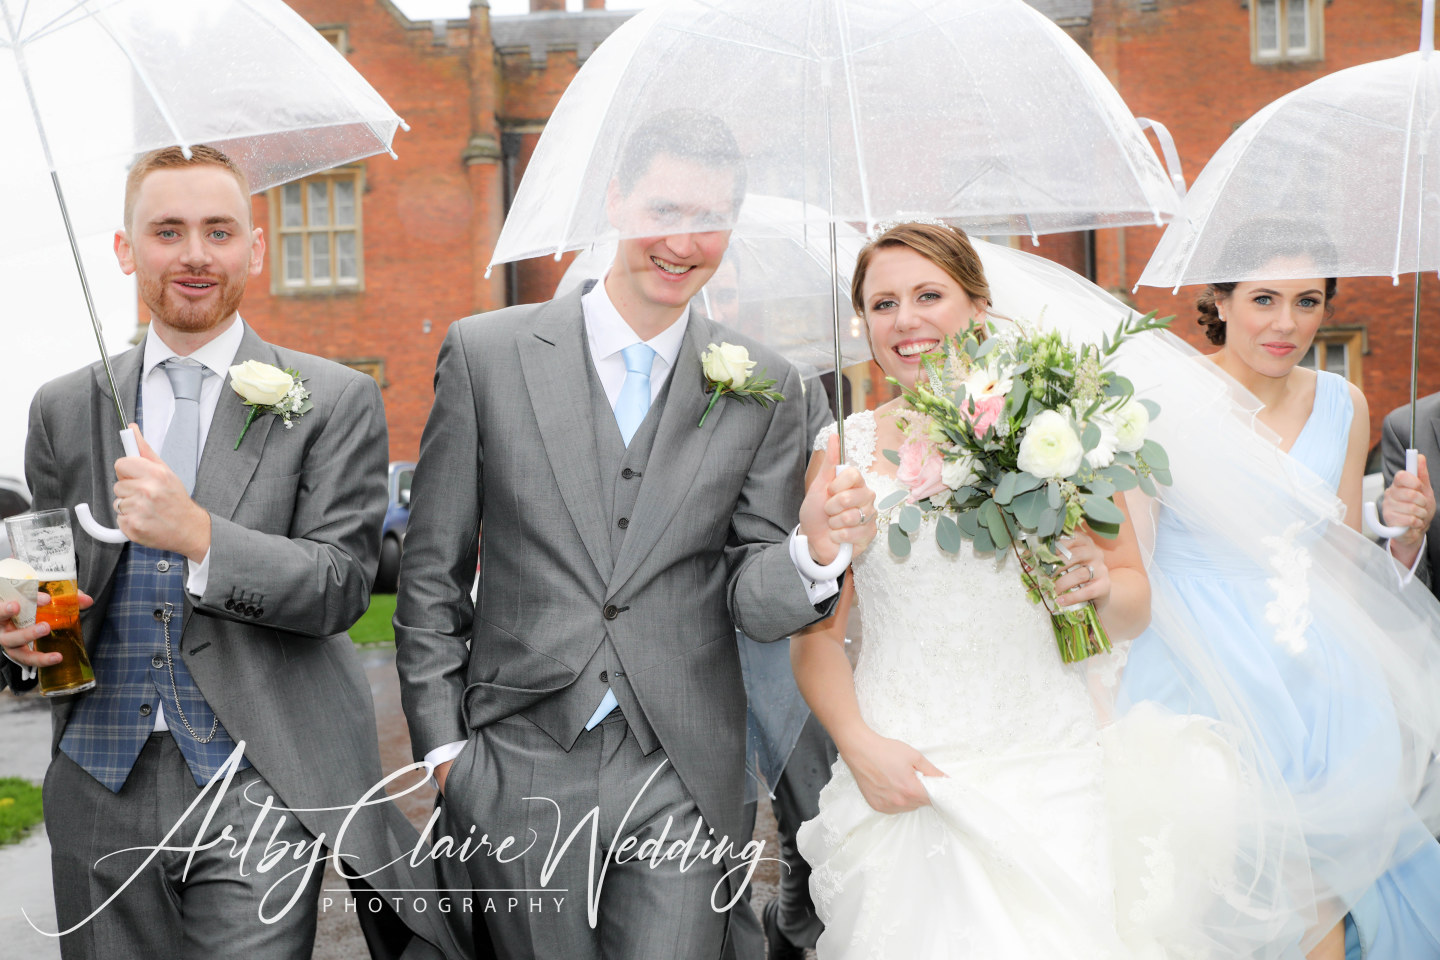 ArtbyClaire Creative Wedding Photography at Latimer House